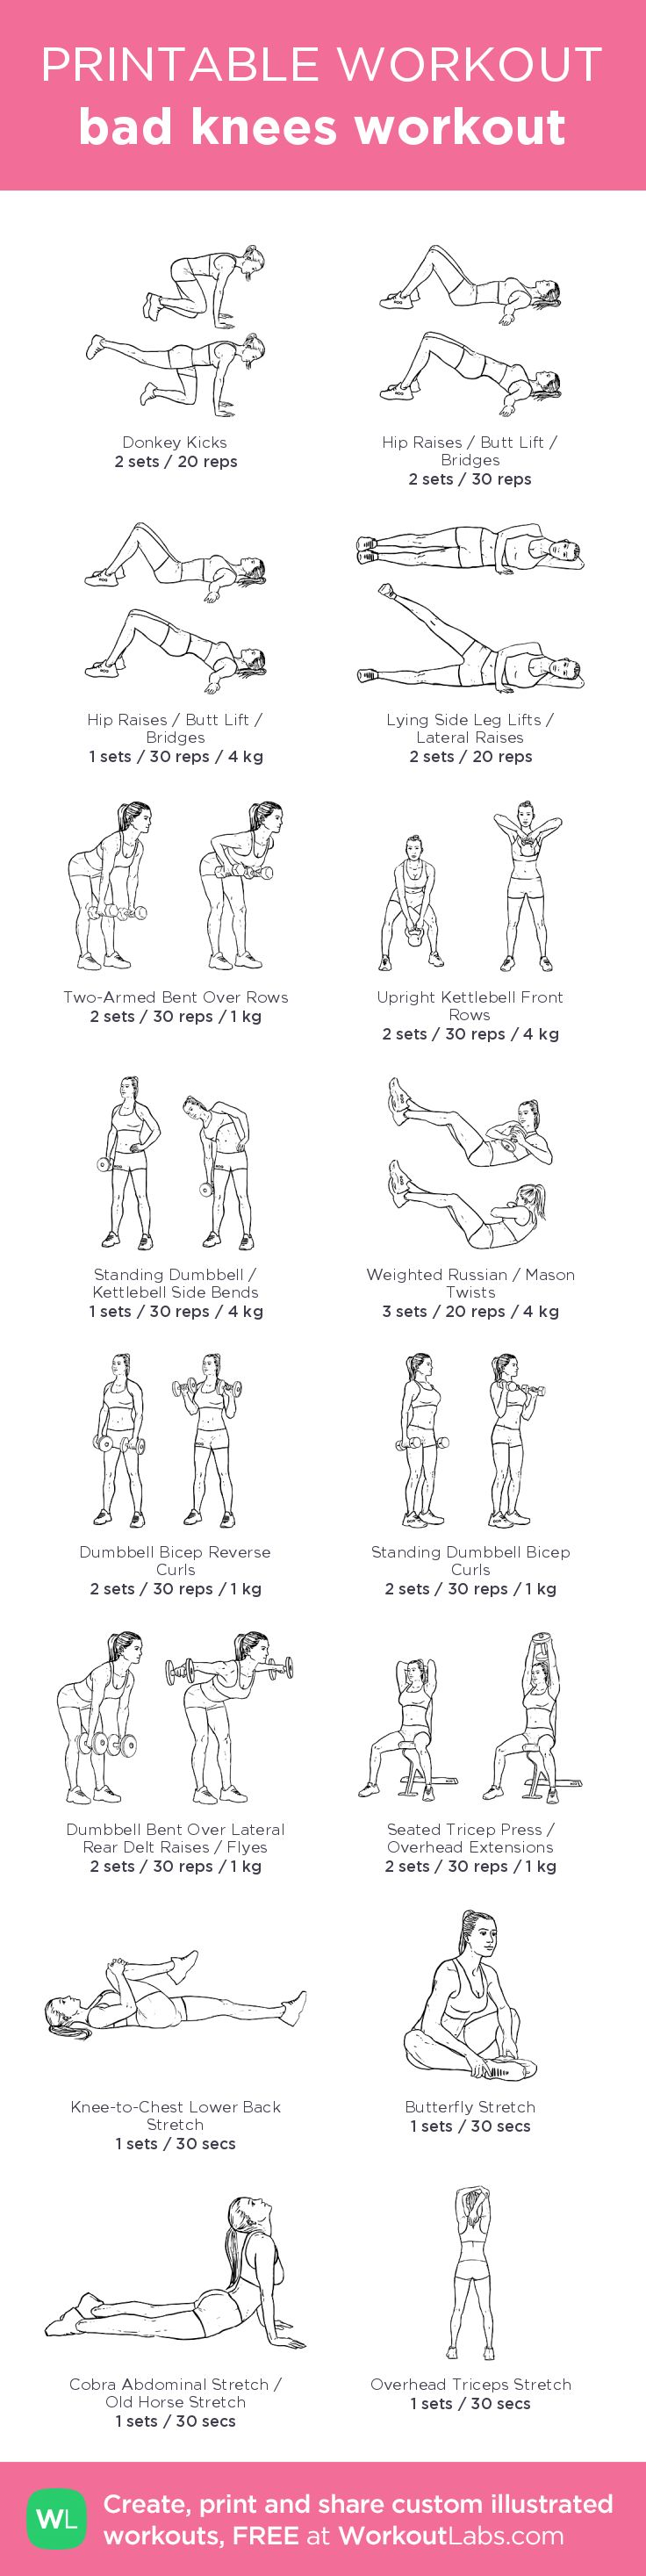 bad knees workout – illustrated exercise plan created at WorkoutLabs.com • Click for a printable PDF and to build your own #customworkout